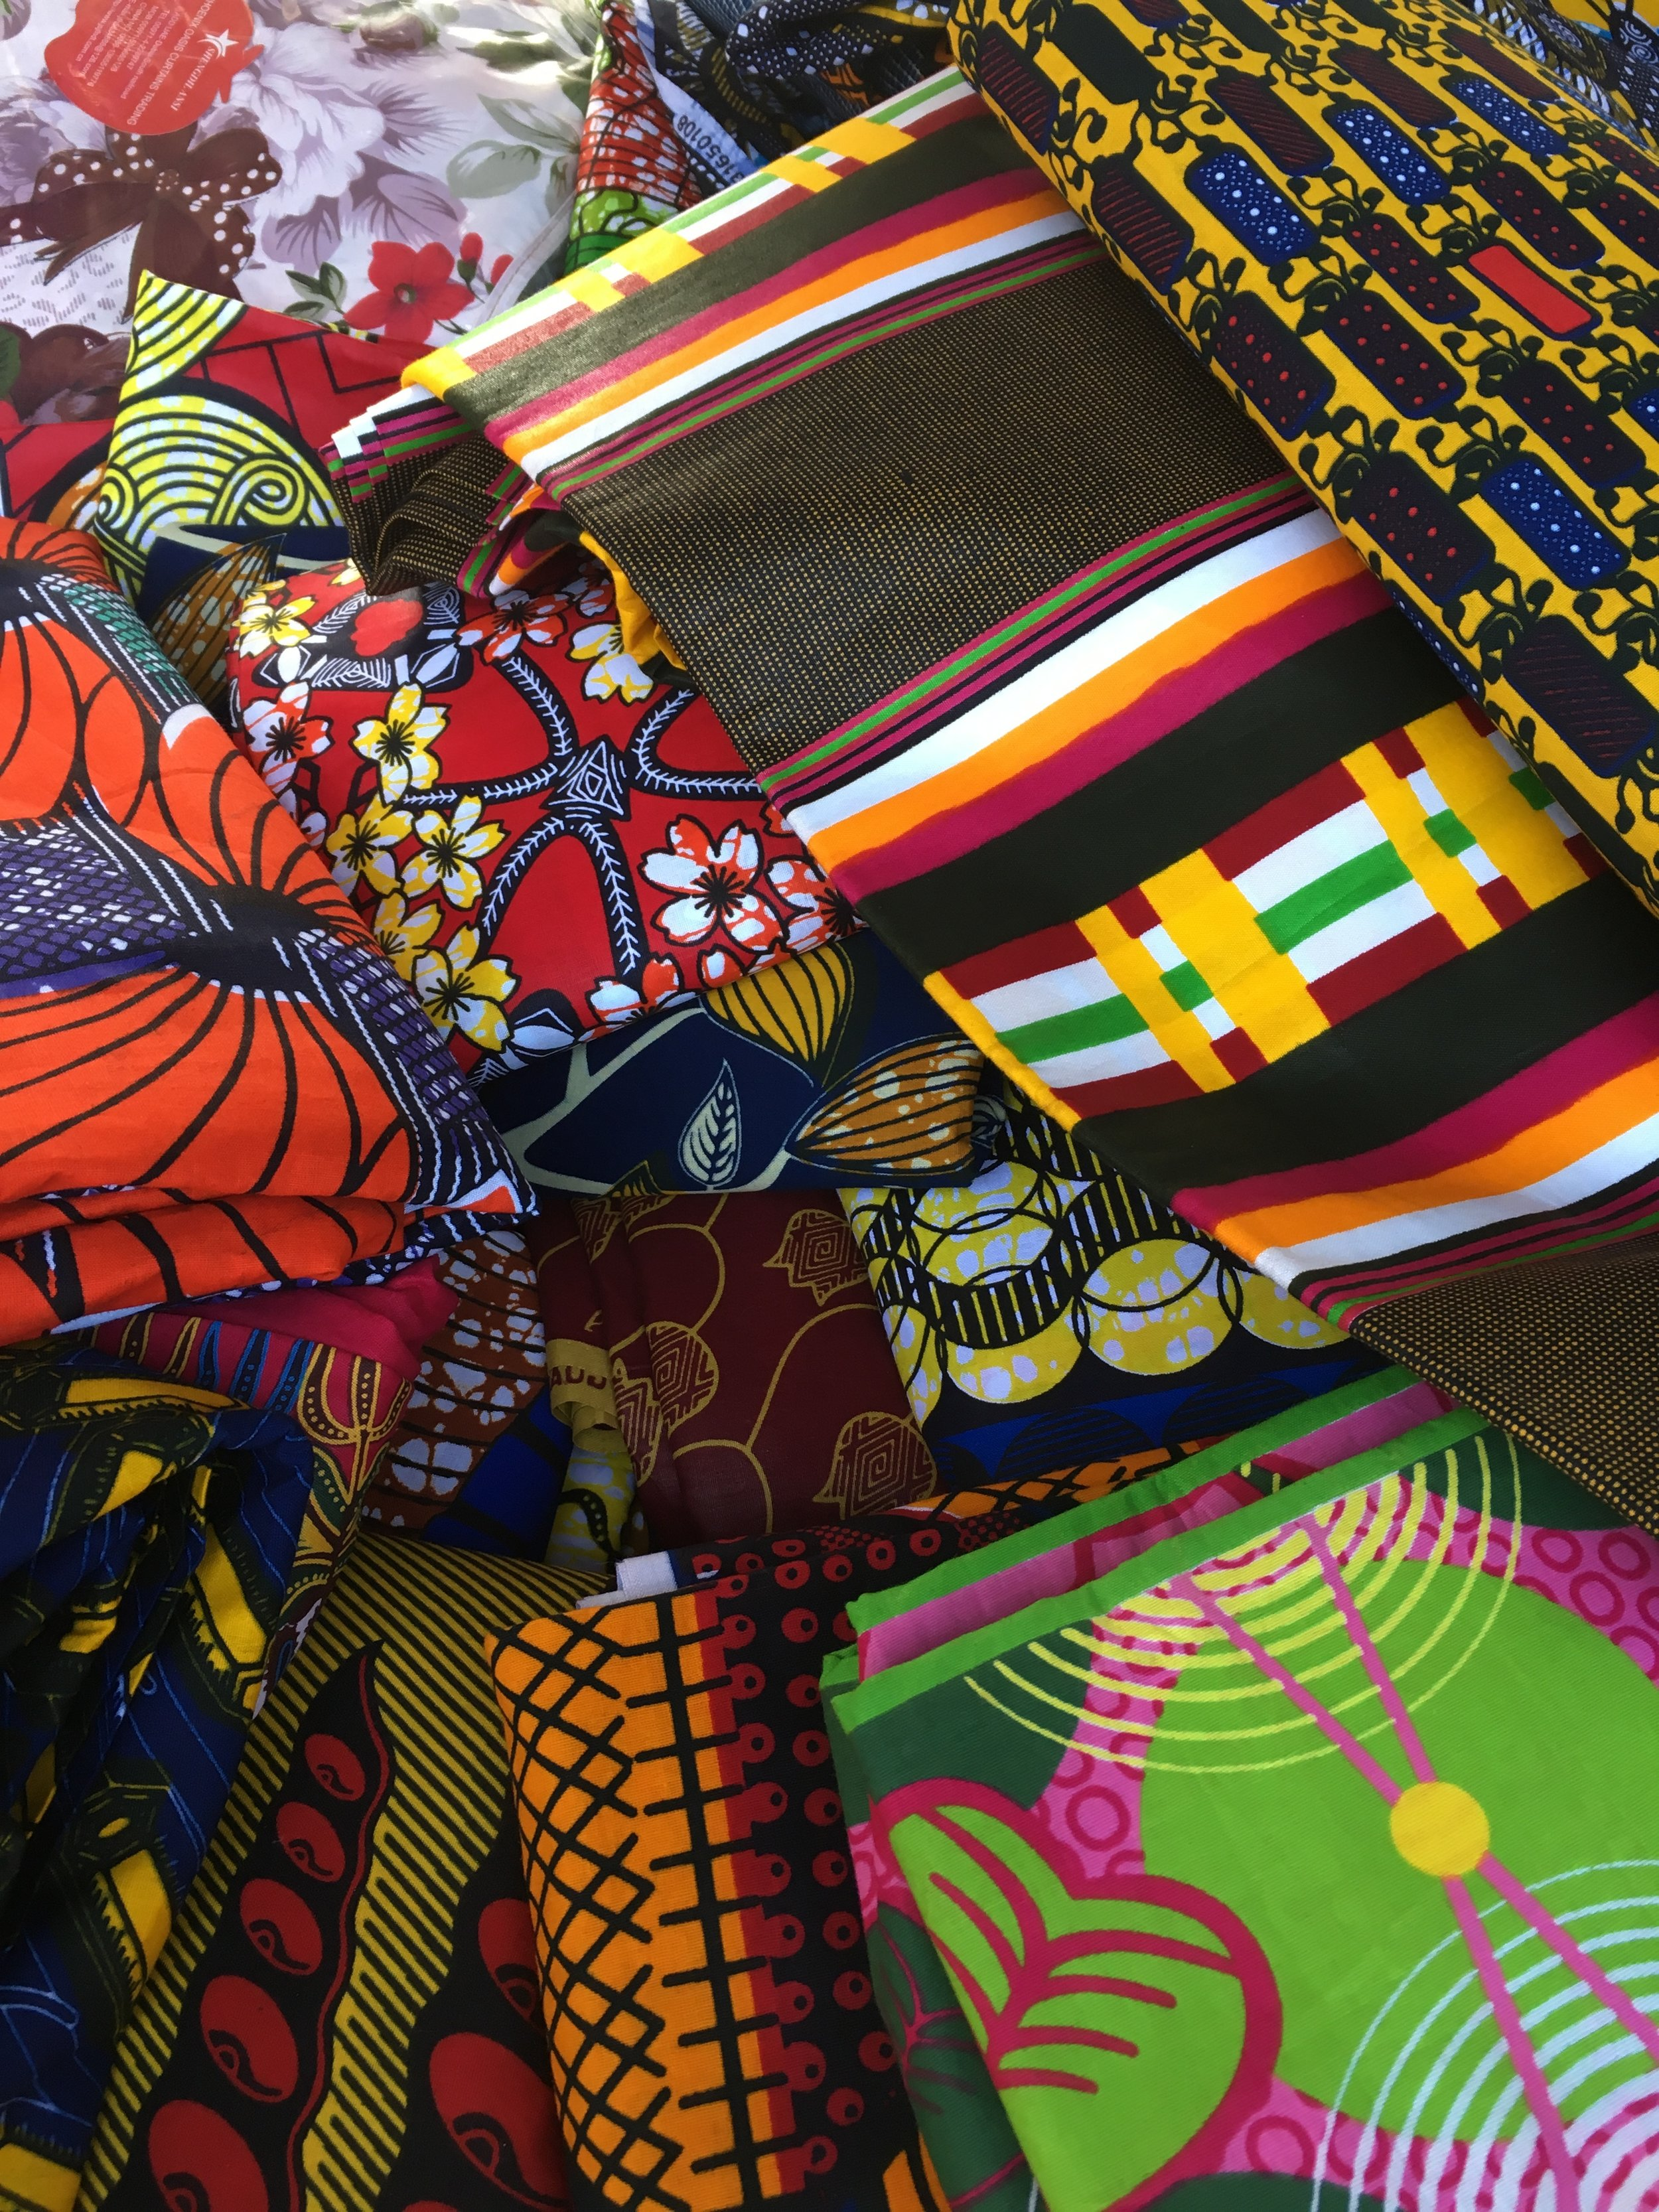 If you like fabrics -- or just a riot of color -- you'll be very happy indeed.